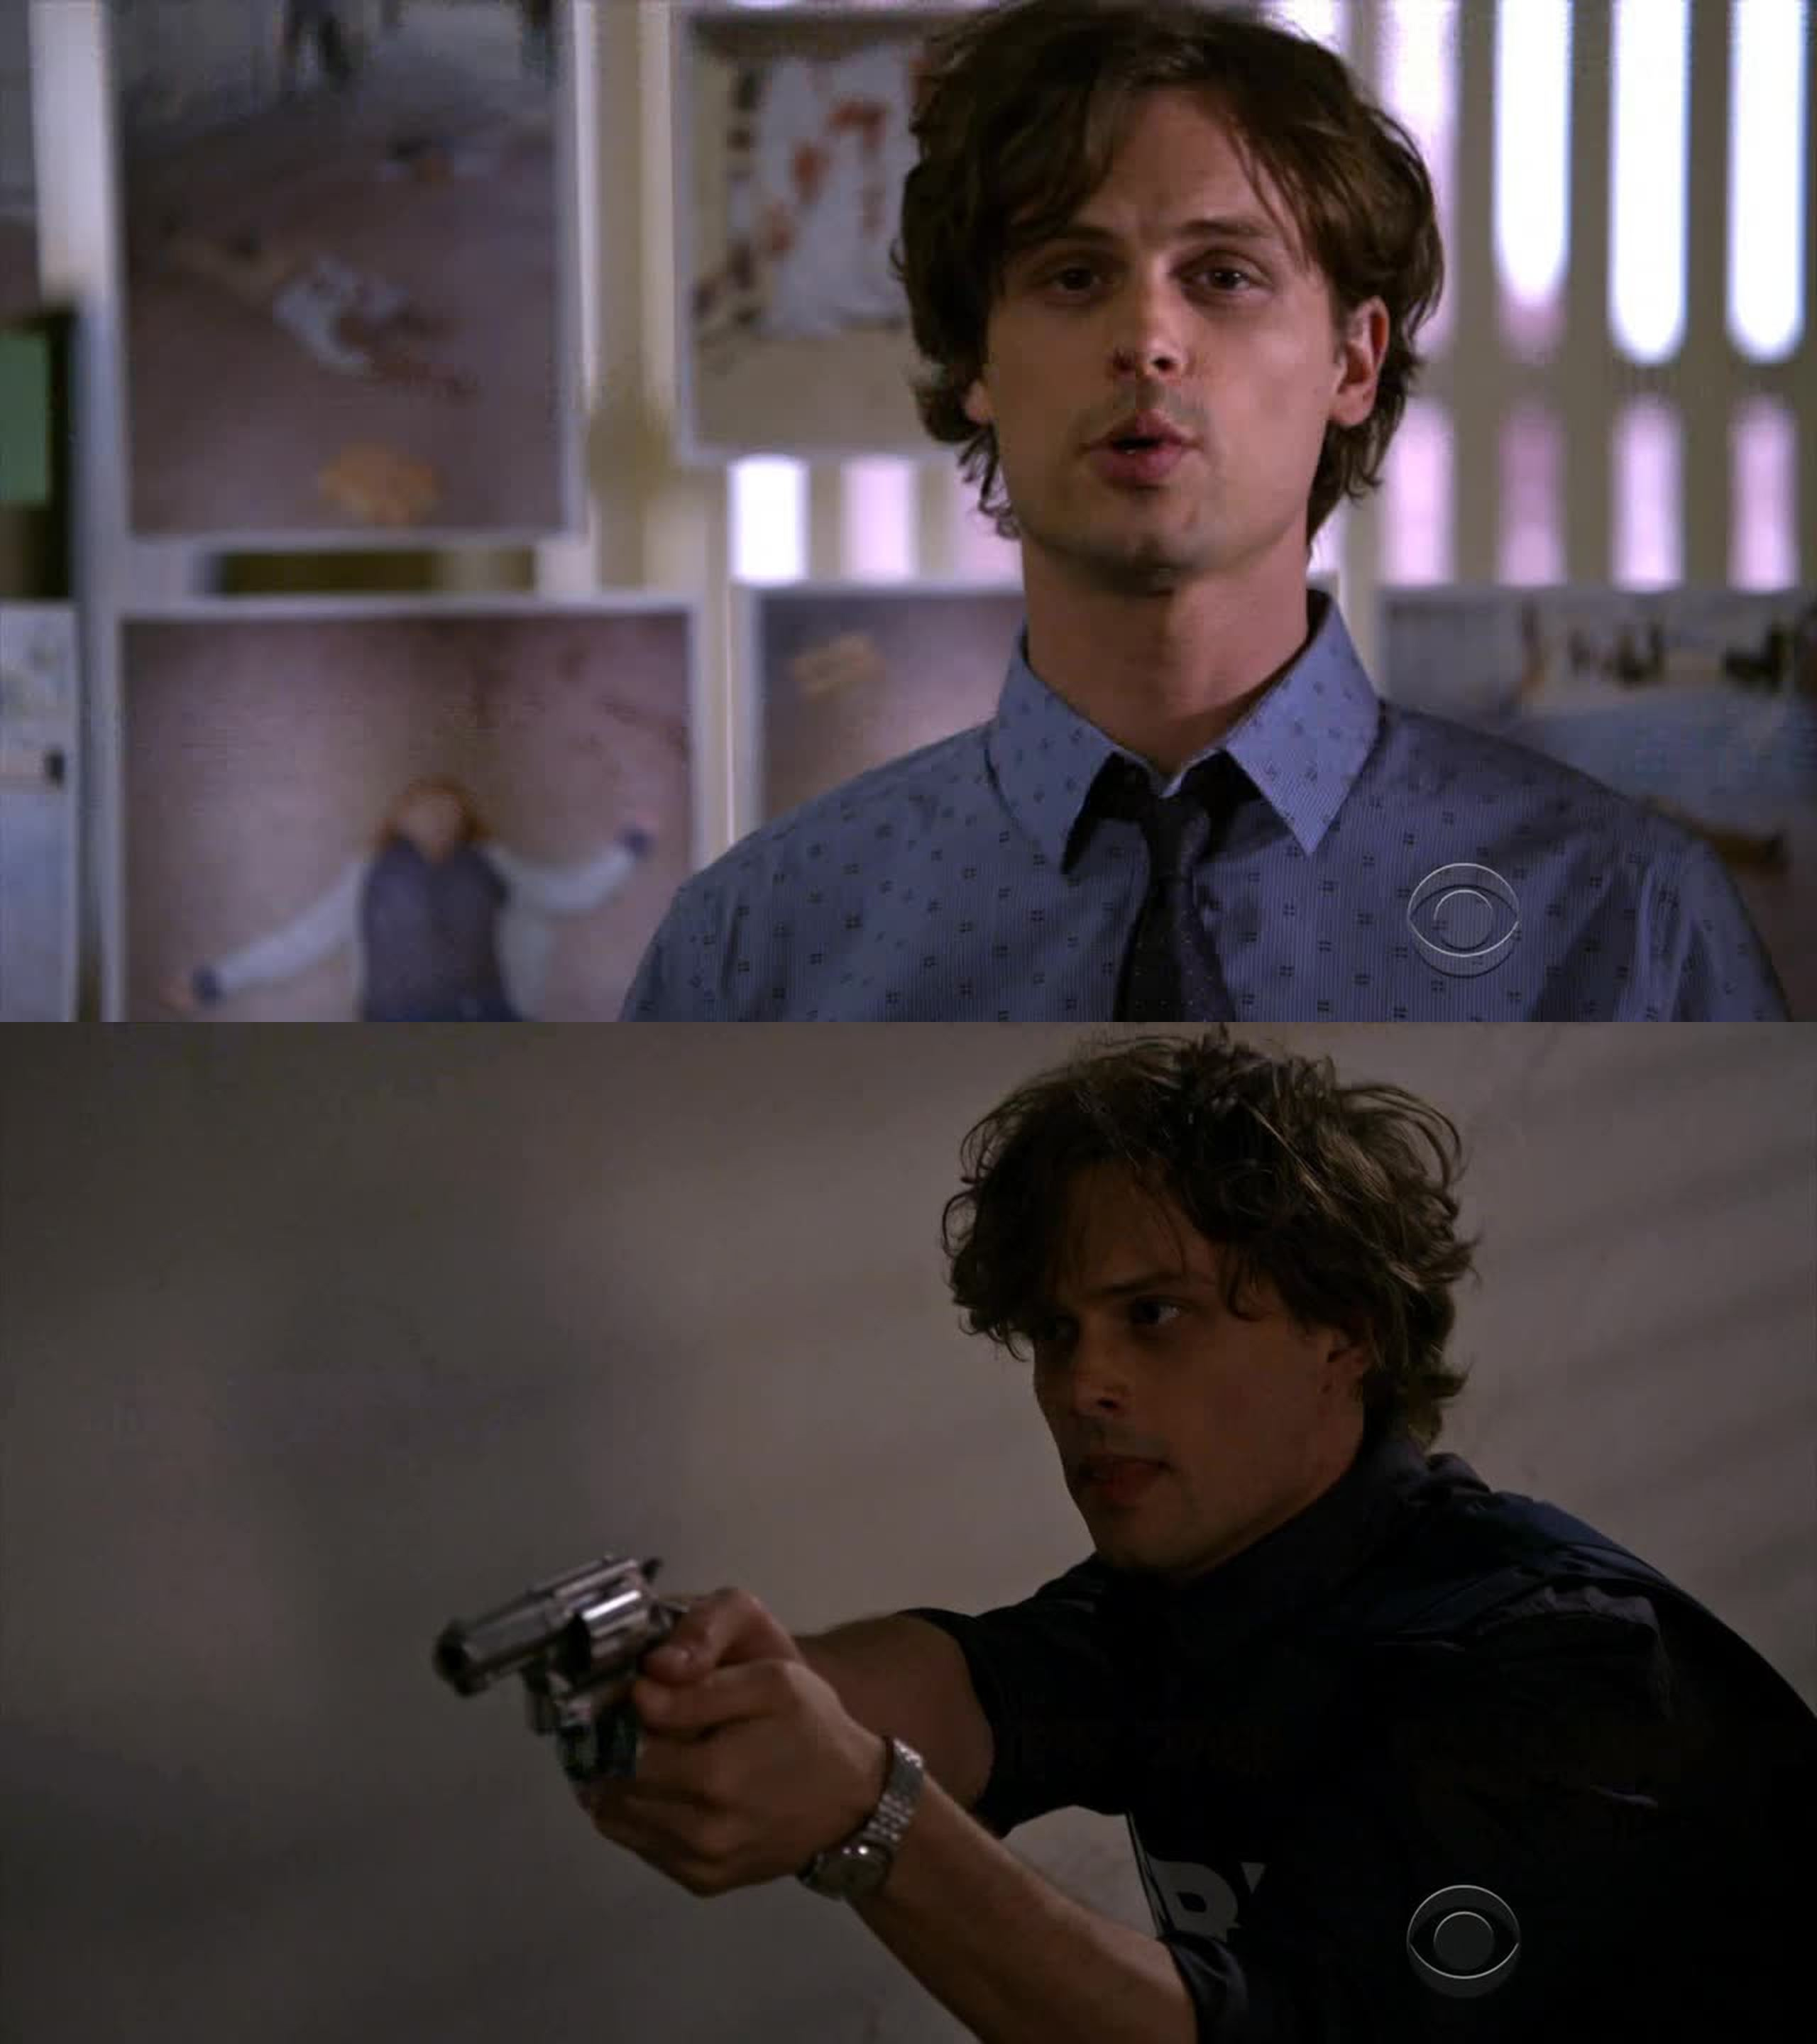 """Why do you watch criminal minds?"" well..."